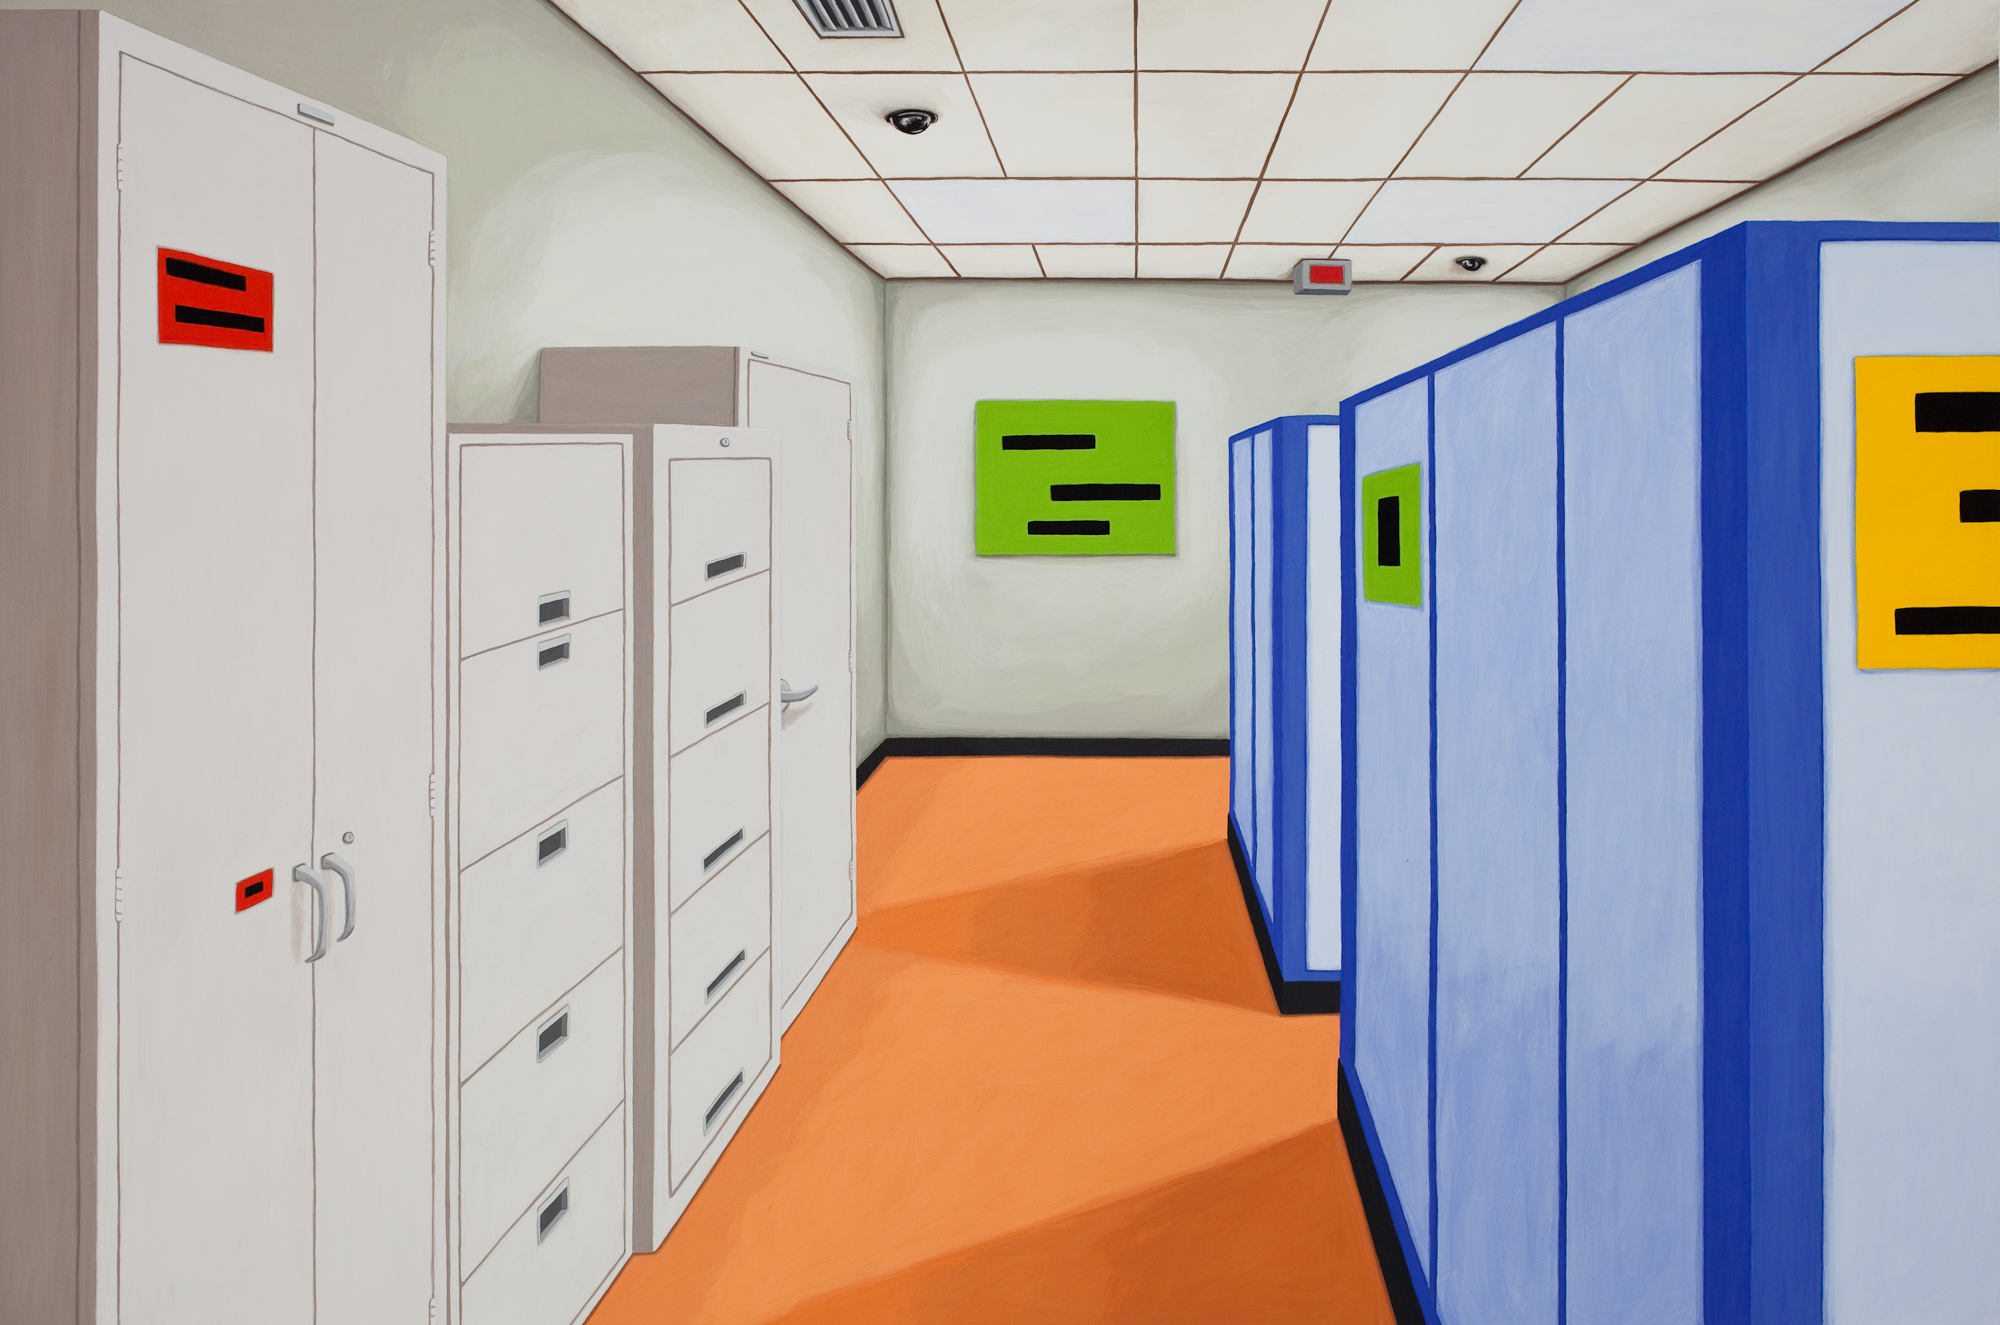 Cubicle #2, 2014, Gouache on Paper, 21 X 30 inches